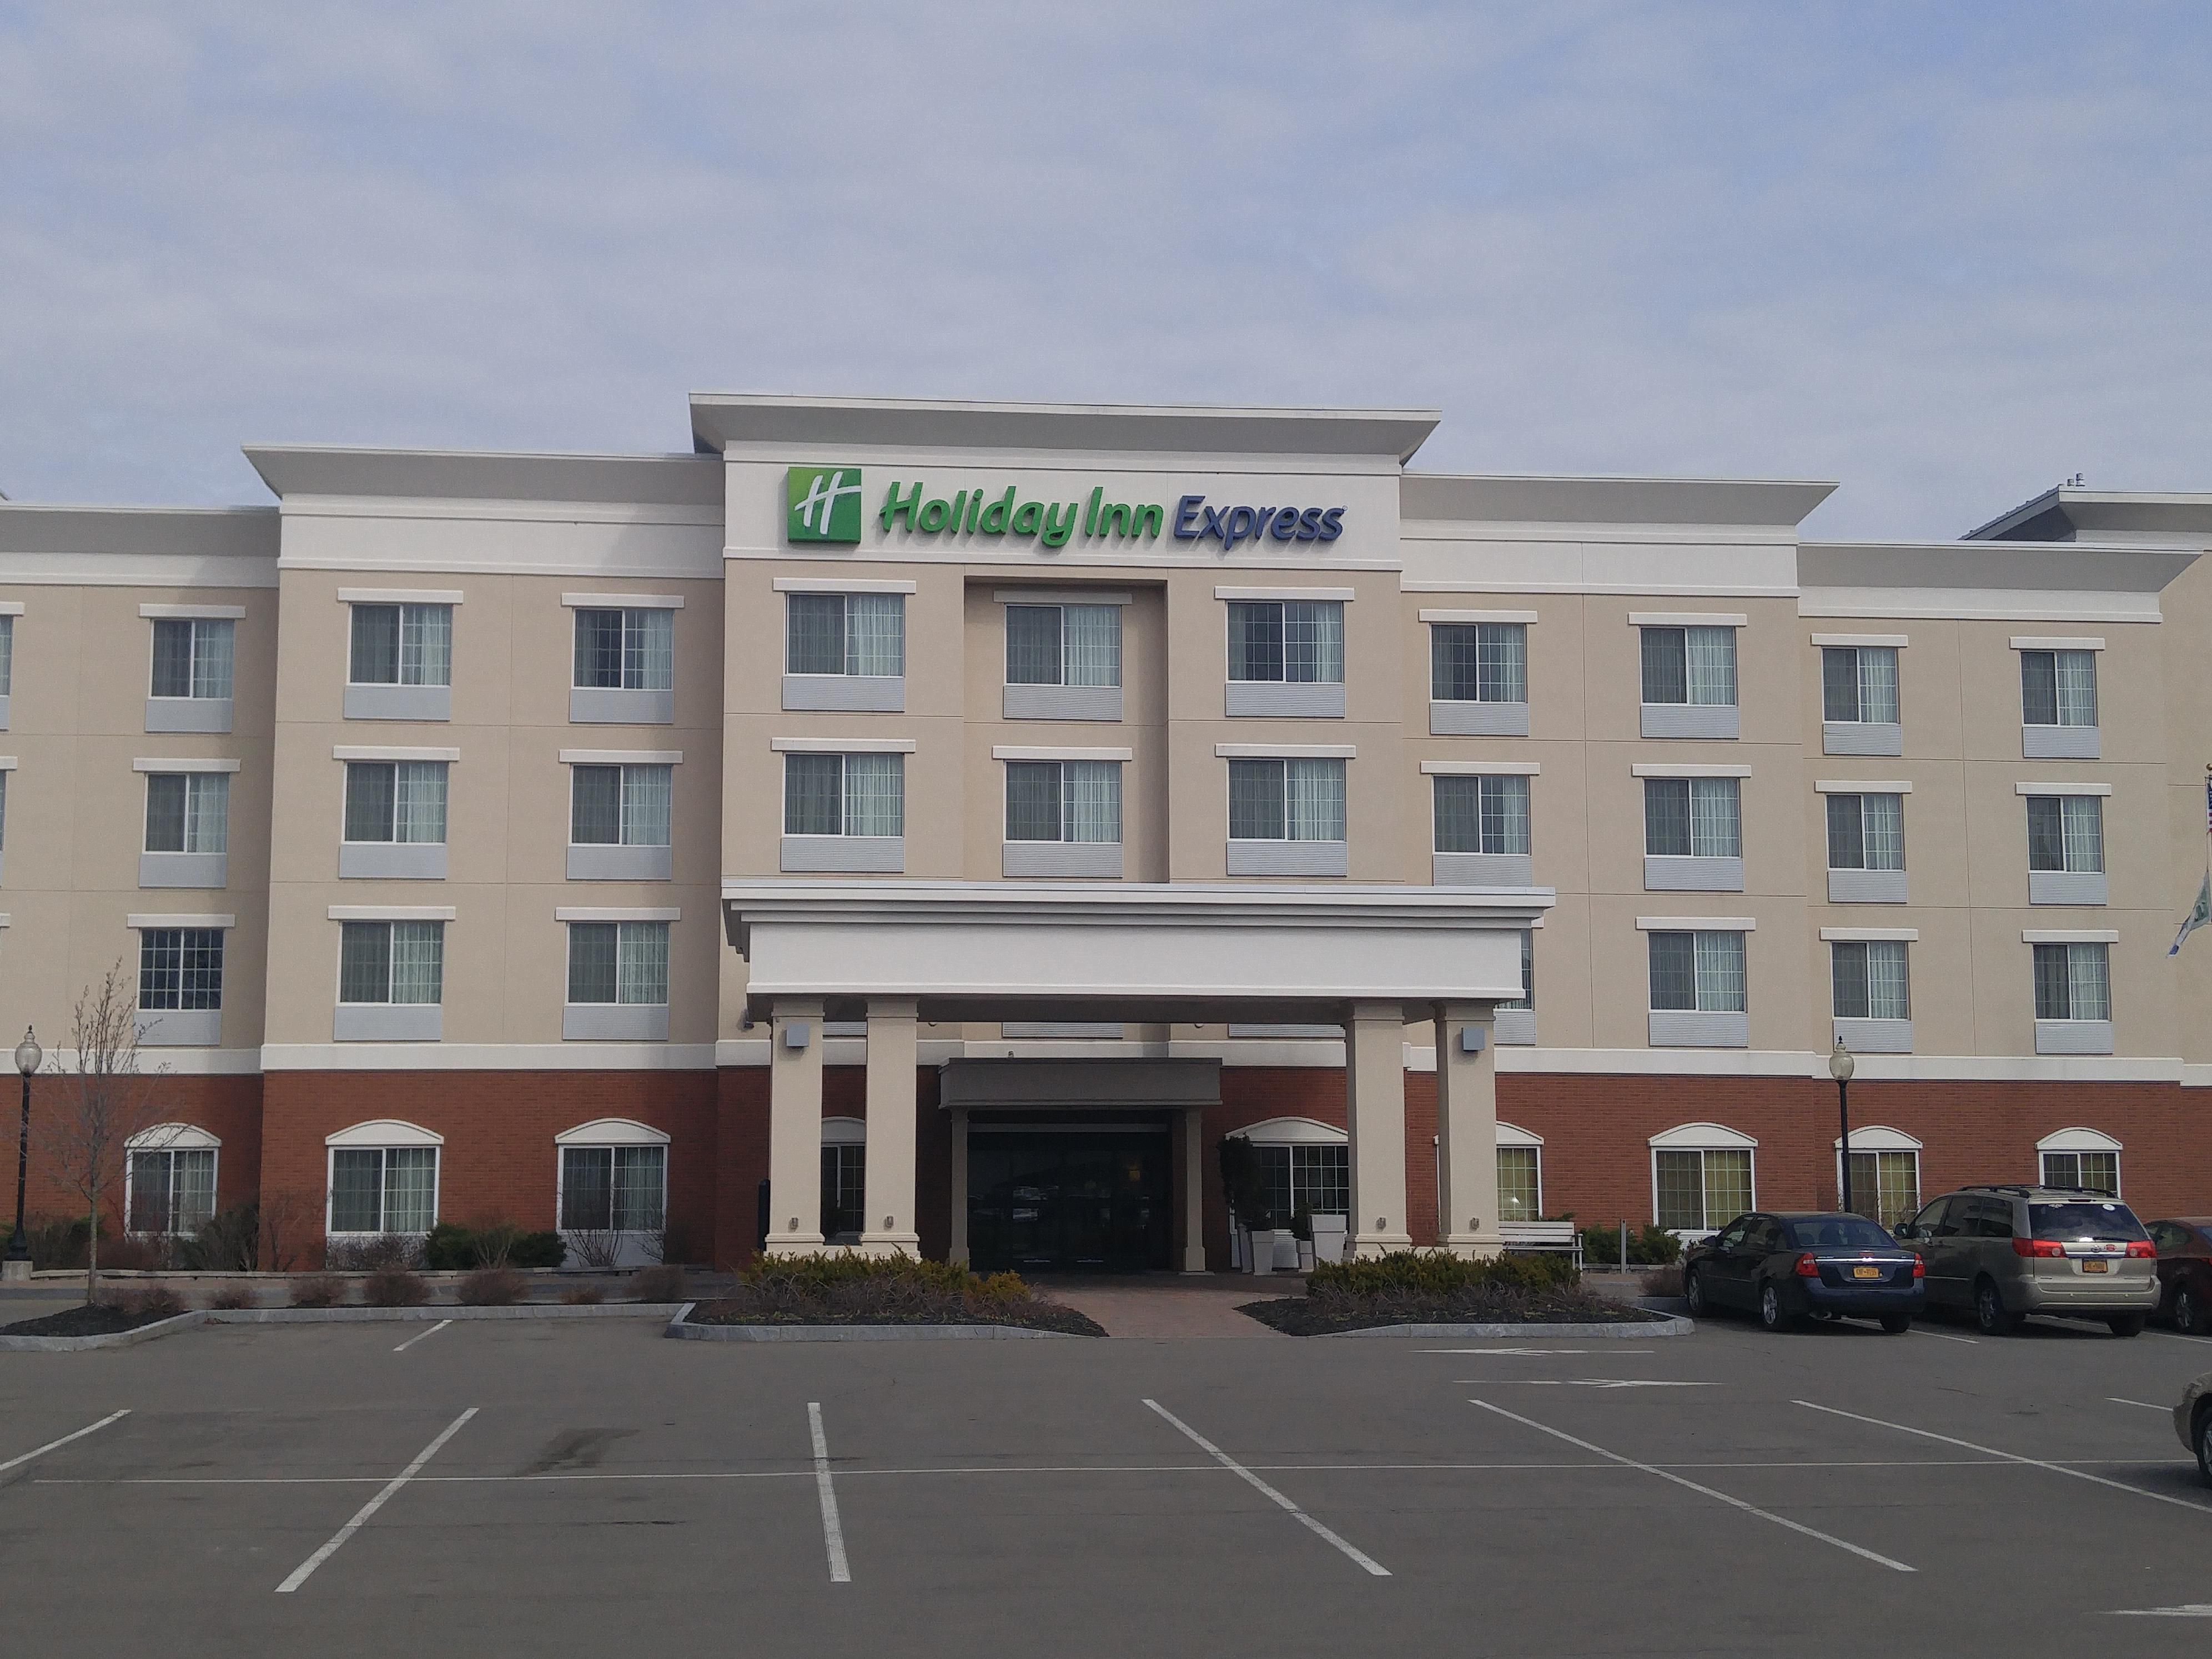 Welcome to the Holiday Inn Express